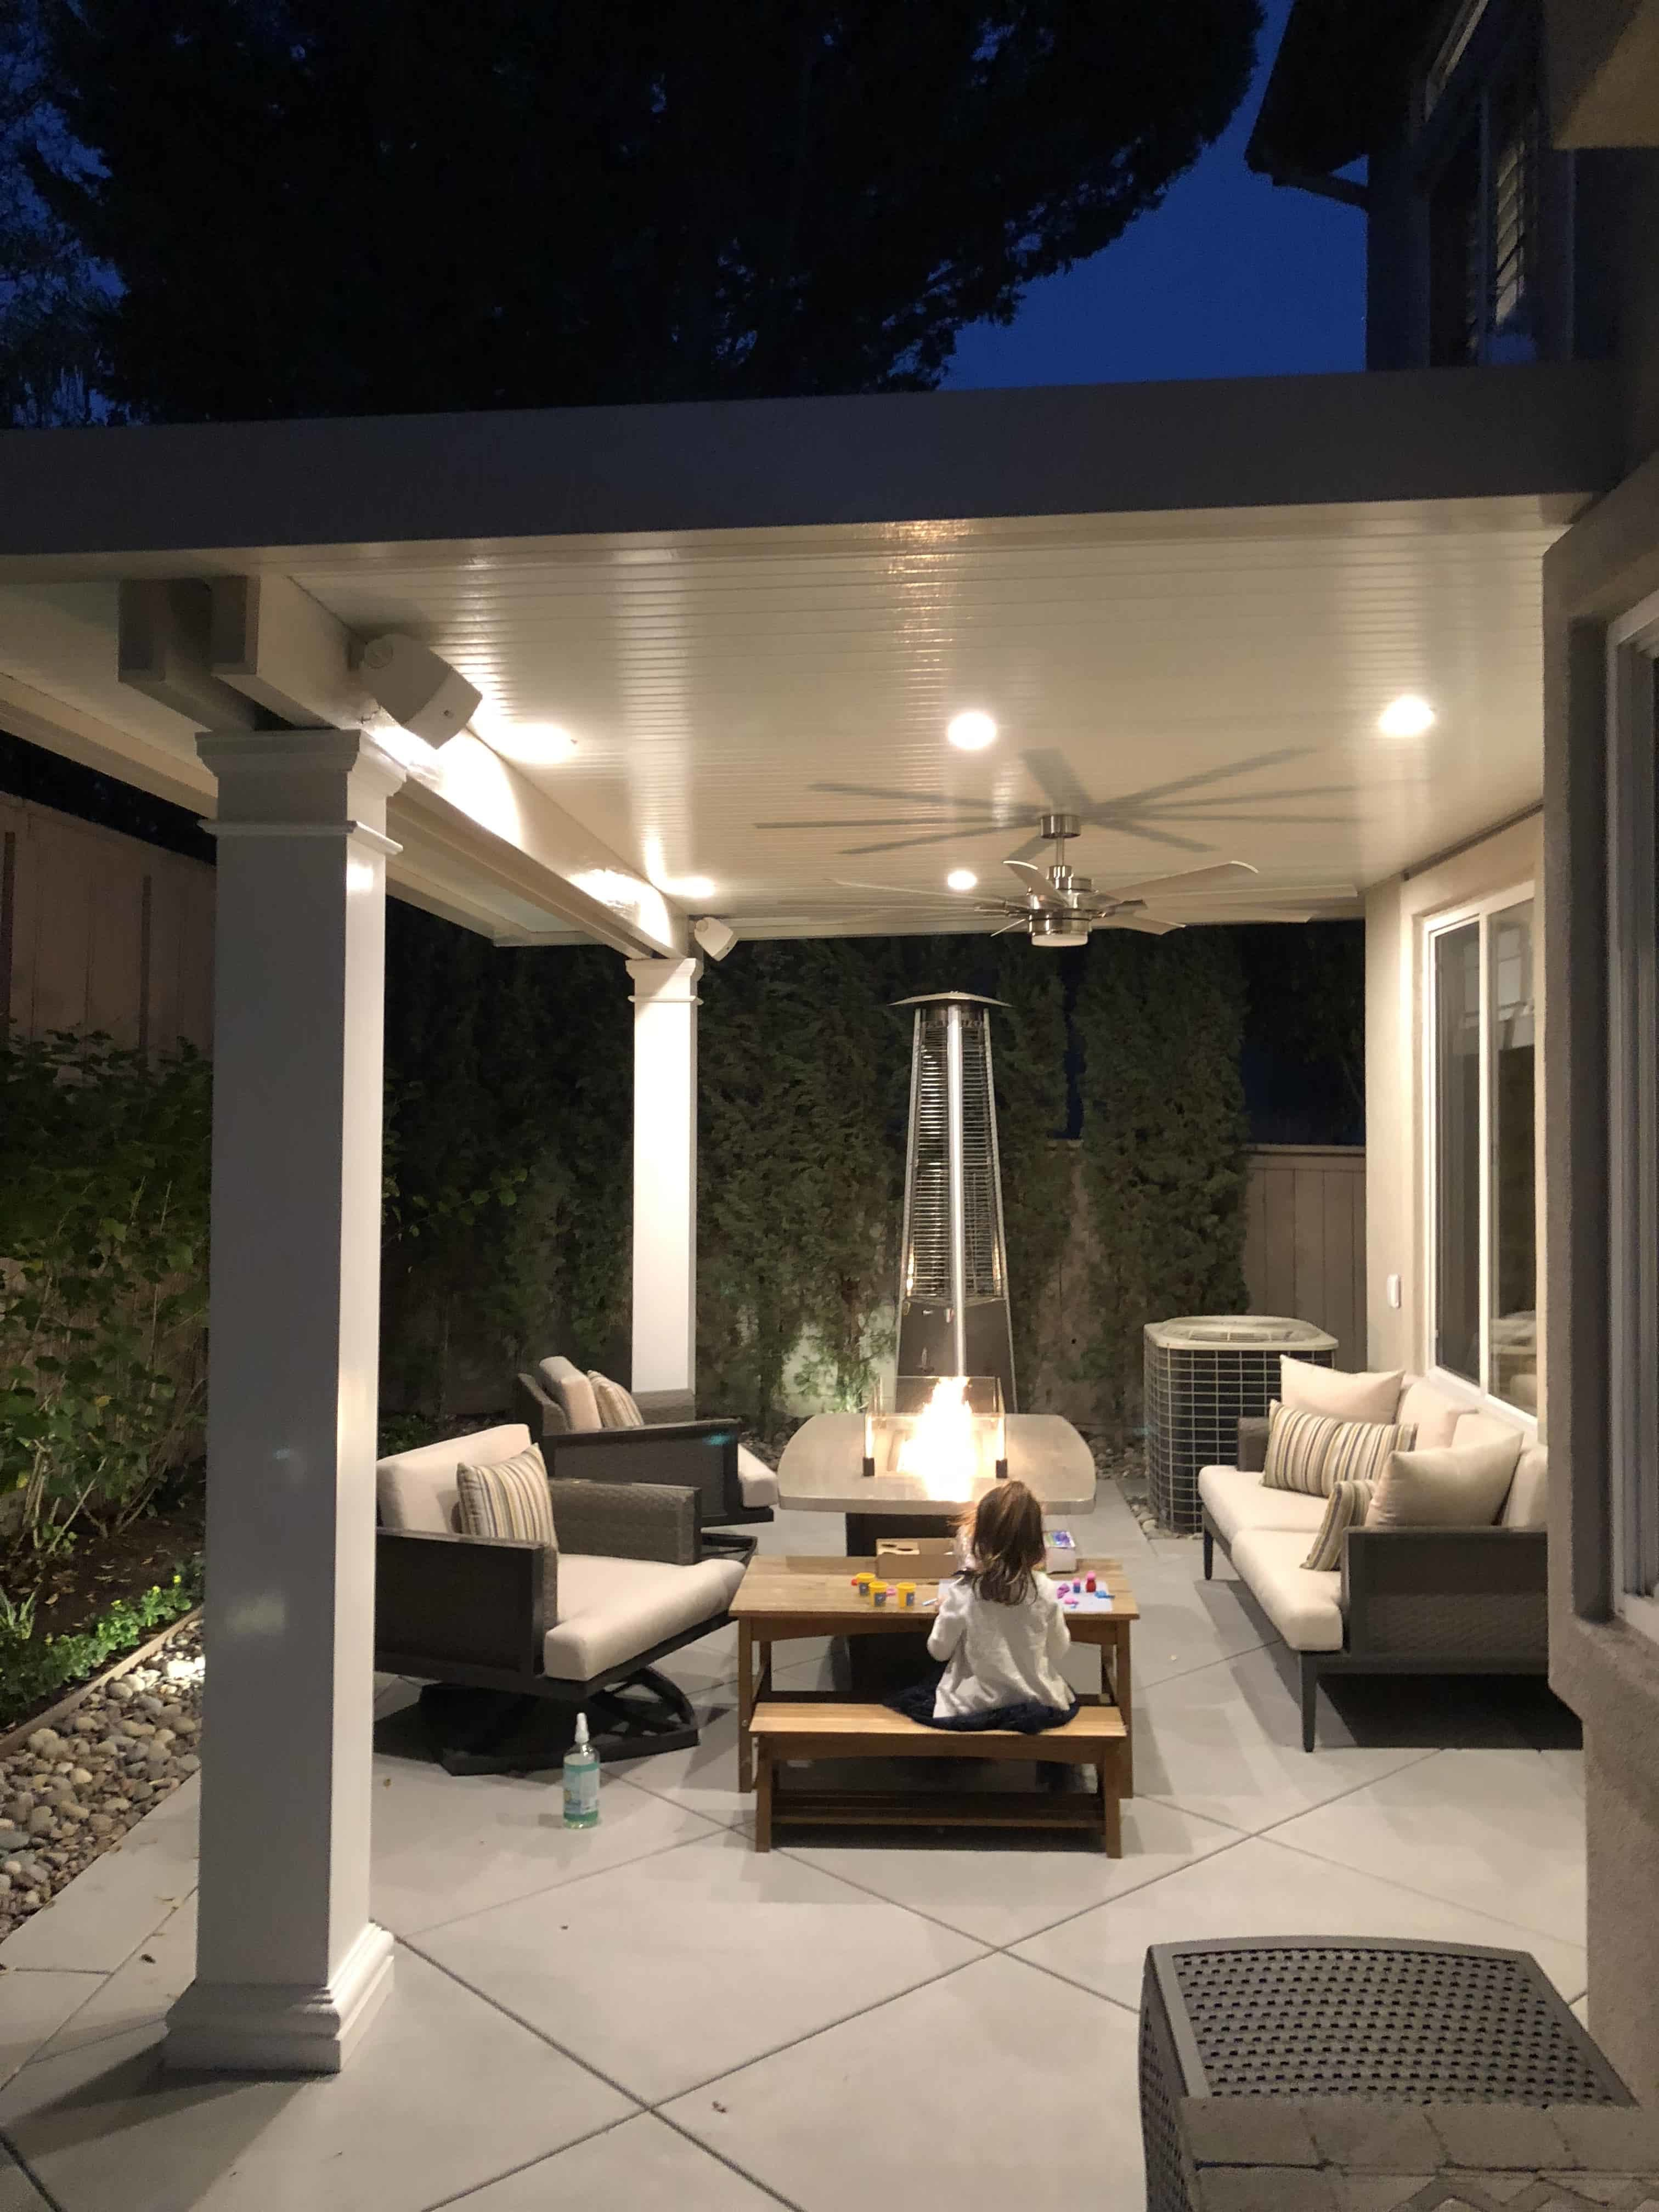 residential shade structures using